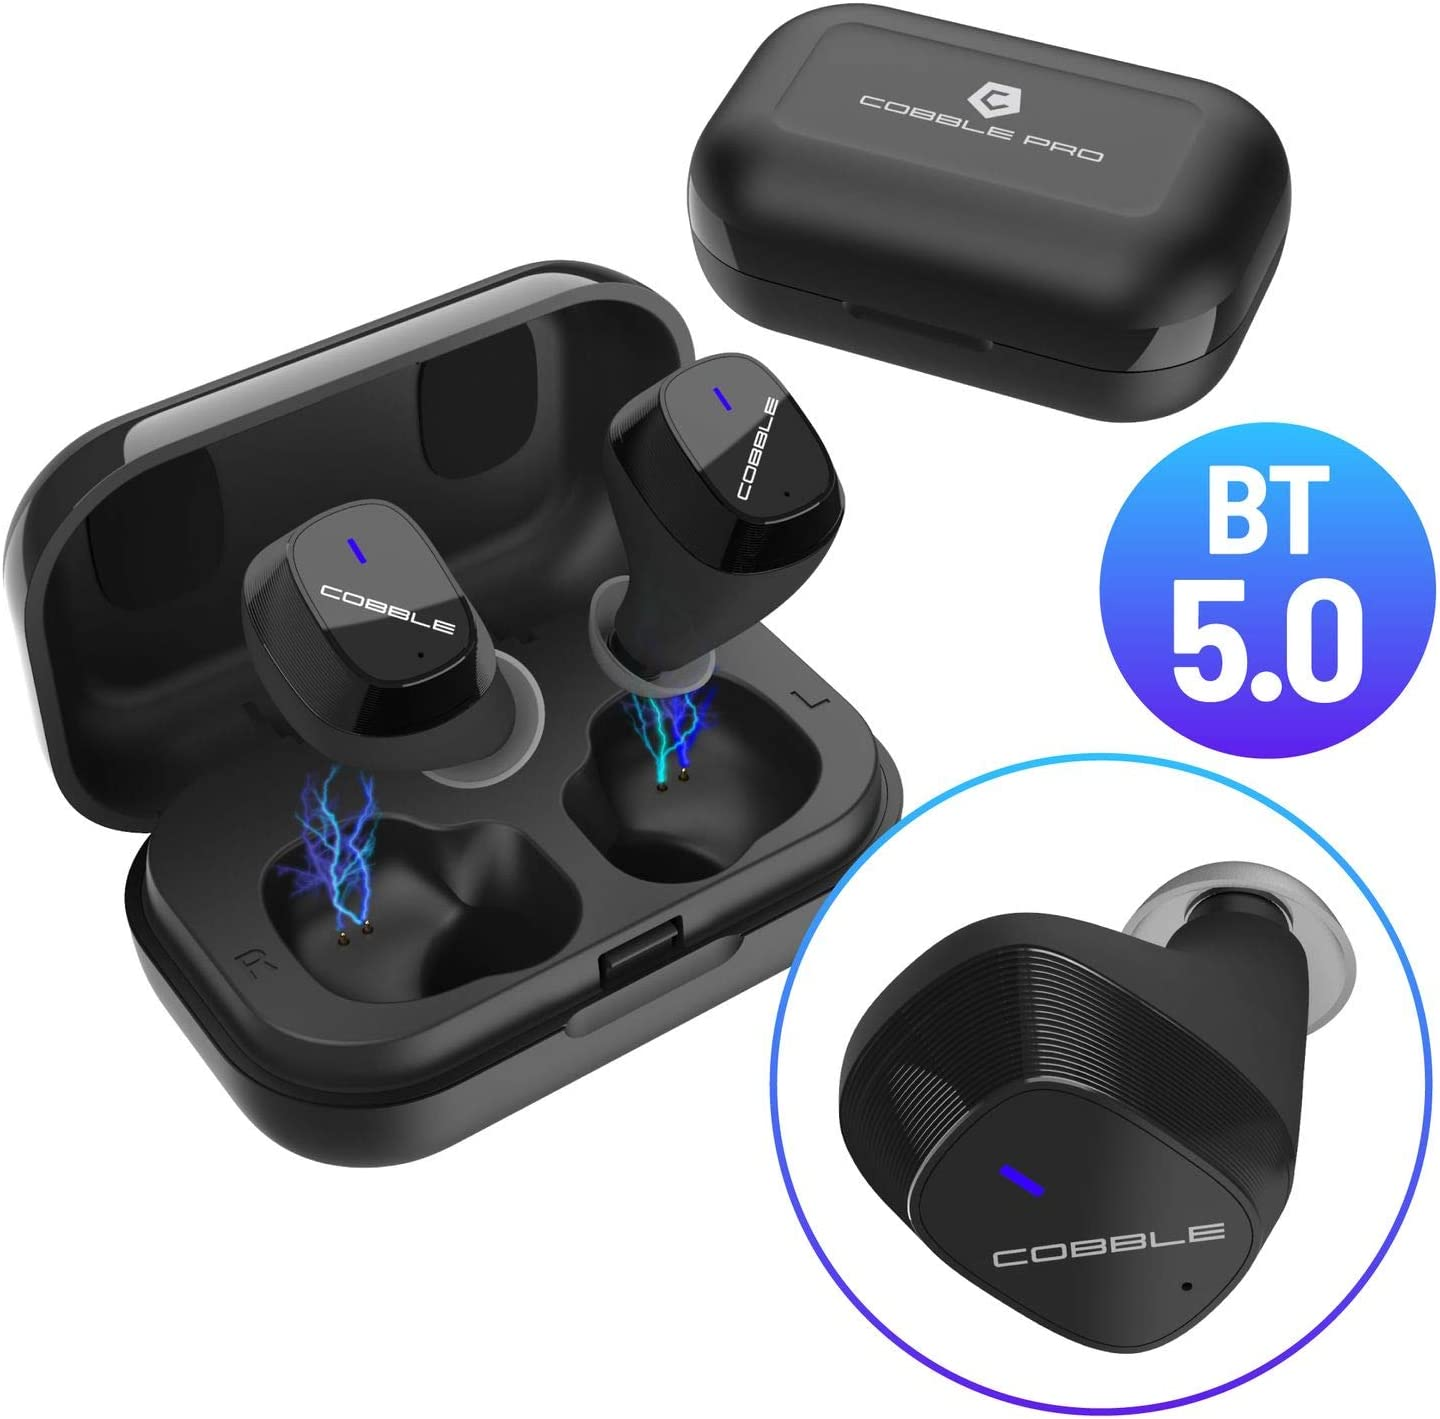 Cobble Pro True Wireless Earbuds BT 5.0 Auto Power On and Pairing in-Ear Sports Mini Earphones, HD Stereo Sound Headphones, Metallic Charging Case, Built-in Dual Mic, 20H Playtime [2019 New Version]